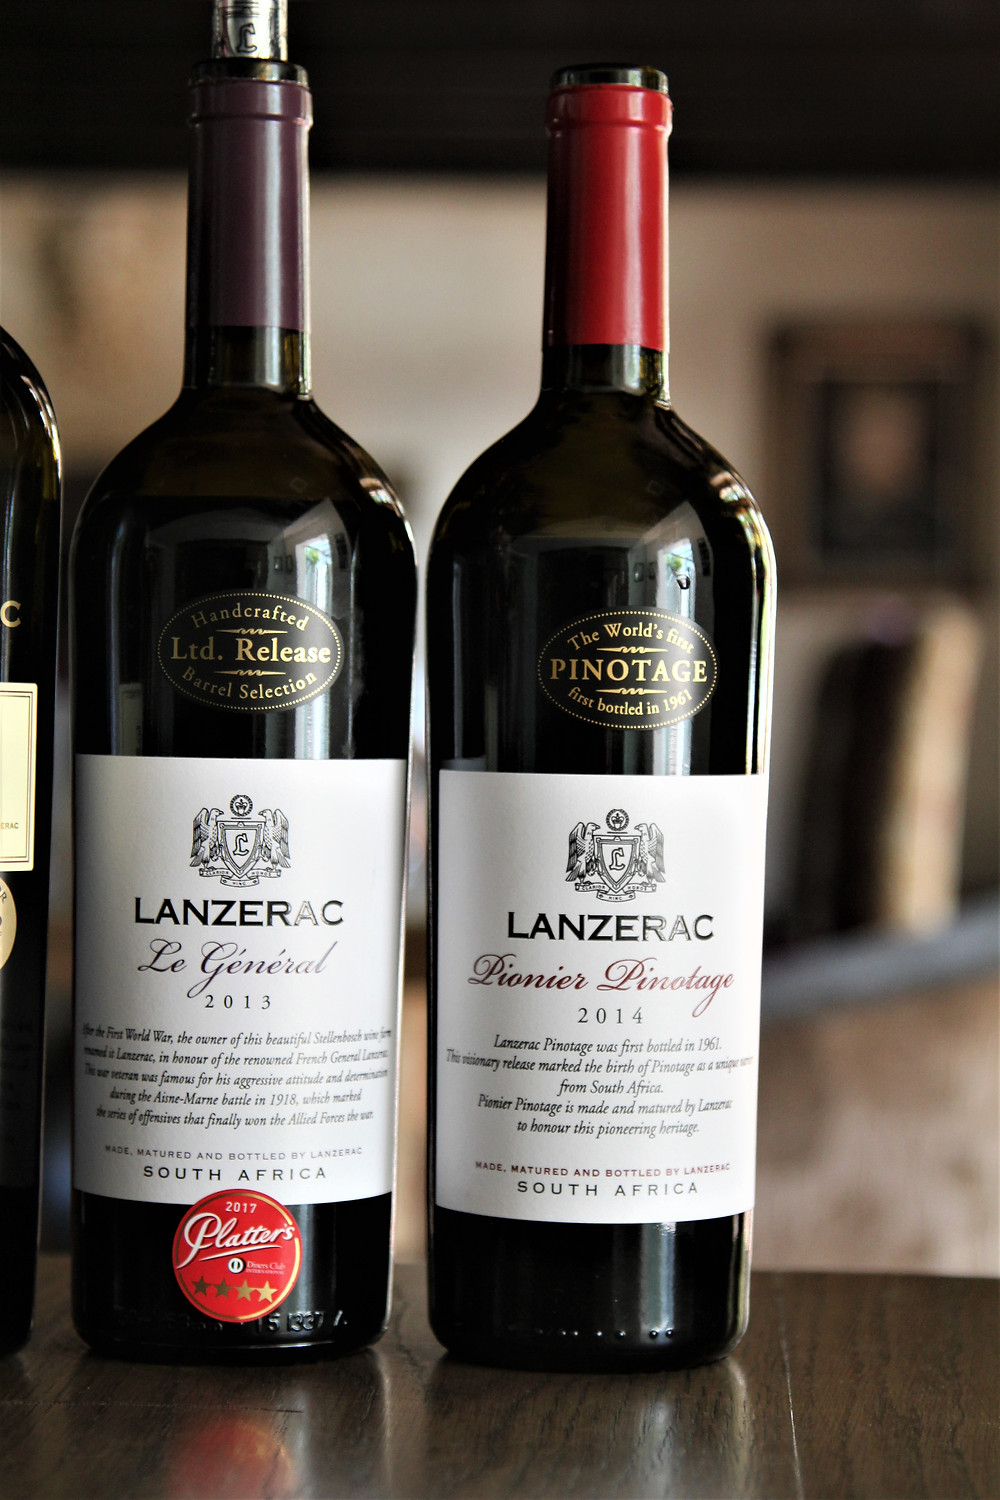 Lanzerac - the historic birthplace of Pinotage - by Luxury Wine Trails - exclusive Cape Town wine tours